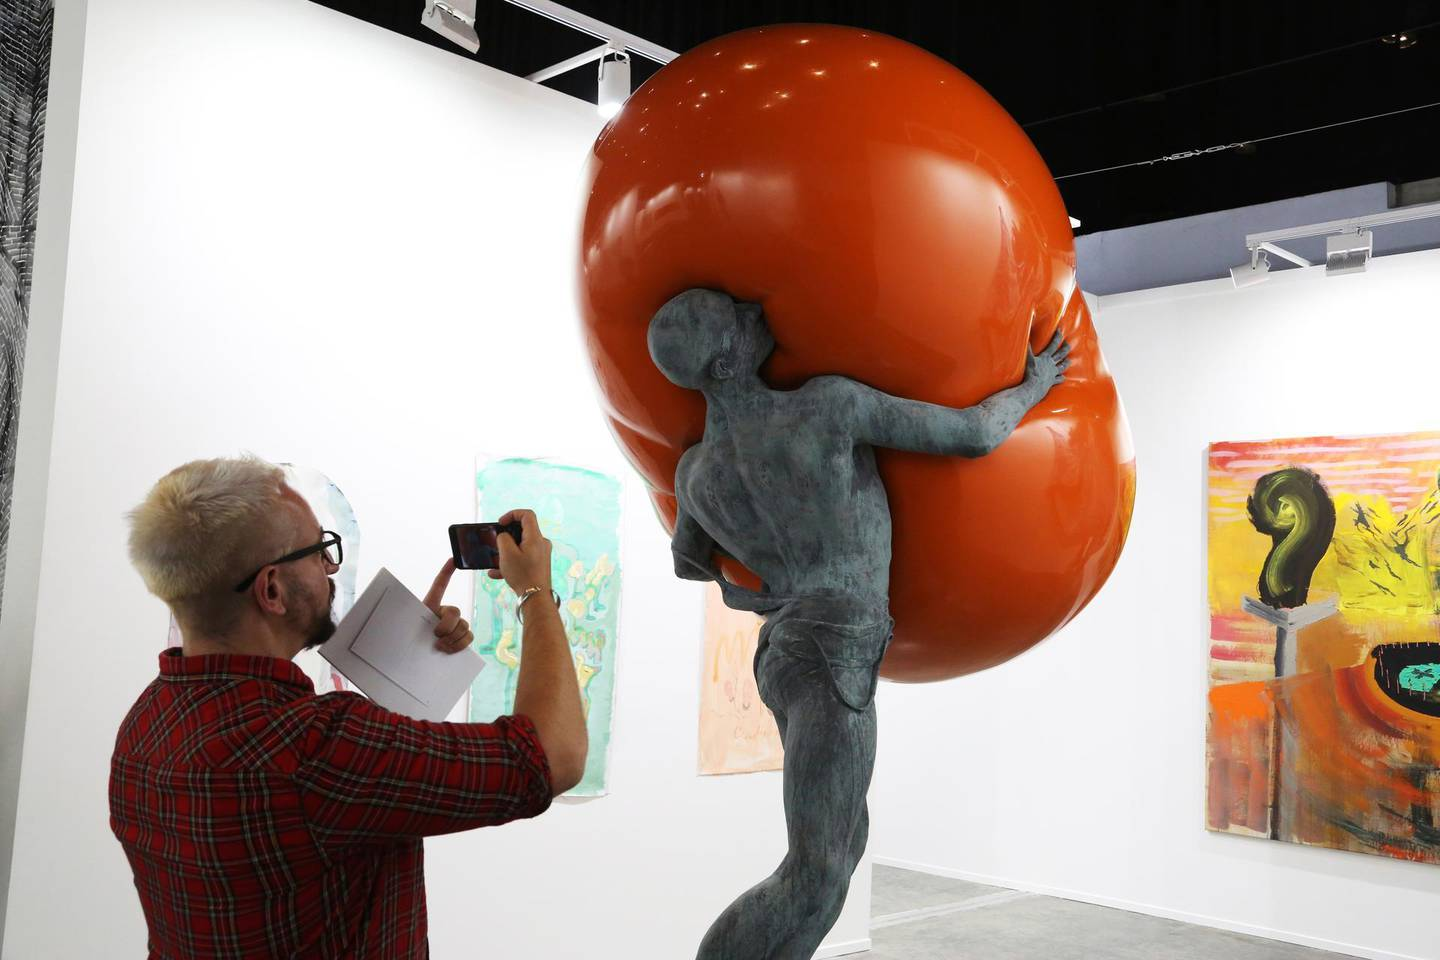 """A man takes a photo of Iranian artist Mohammad Hossein Gholamzadeh's 2019 work """"Farewell to Proserpina"""" at Art Dubai in Dubai, United Arab Emirates, Tuesday, March 19, 2019. Art Dubai is marking its 13th edition with an exhibition running March 20 through March 23. (AP Photo/Jon Gambrell)"""